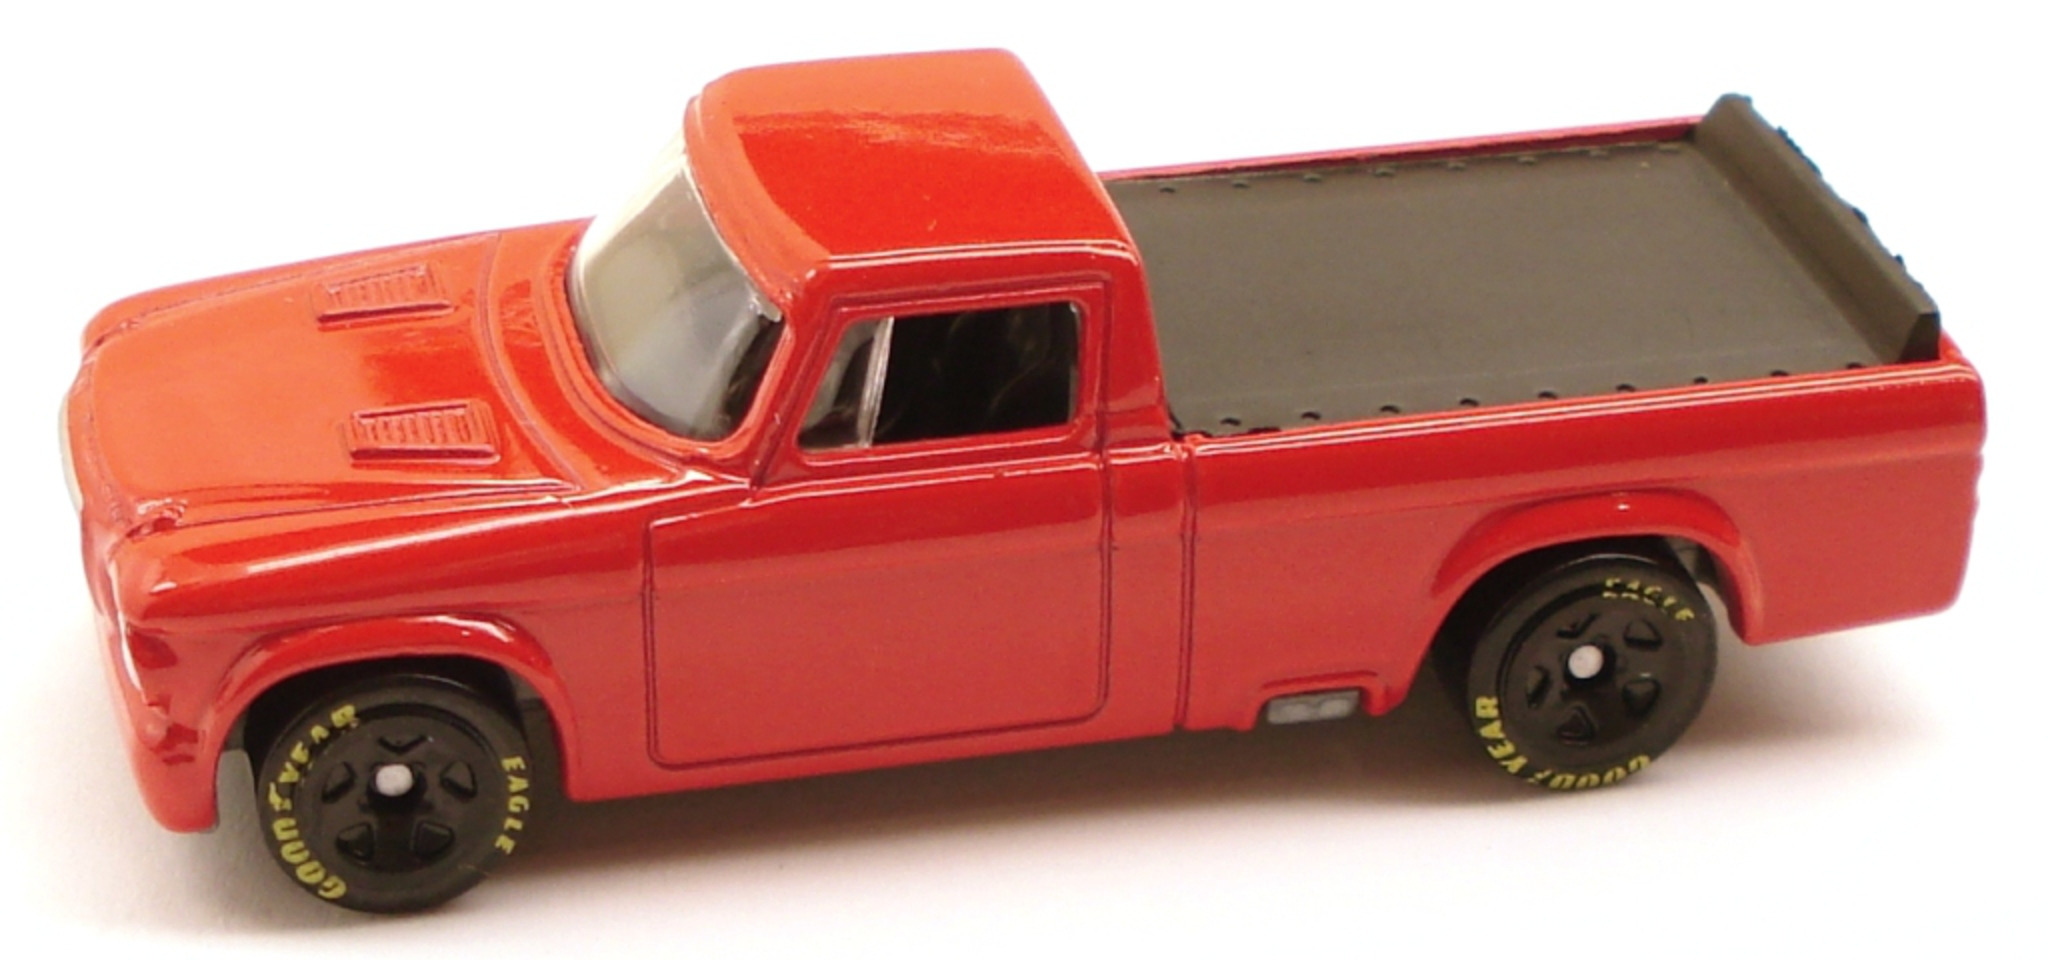 63 Studebaker Champ - Hot Wheels Wiki